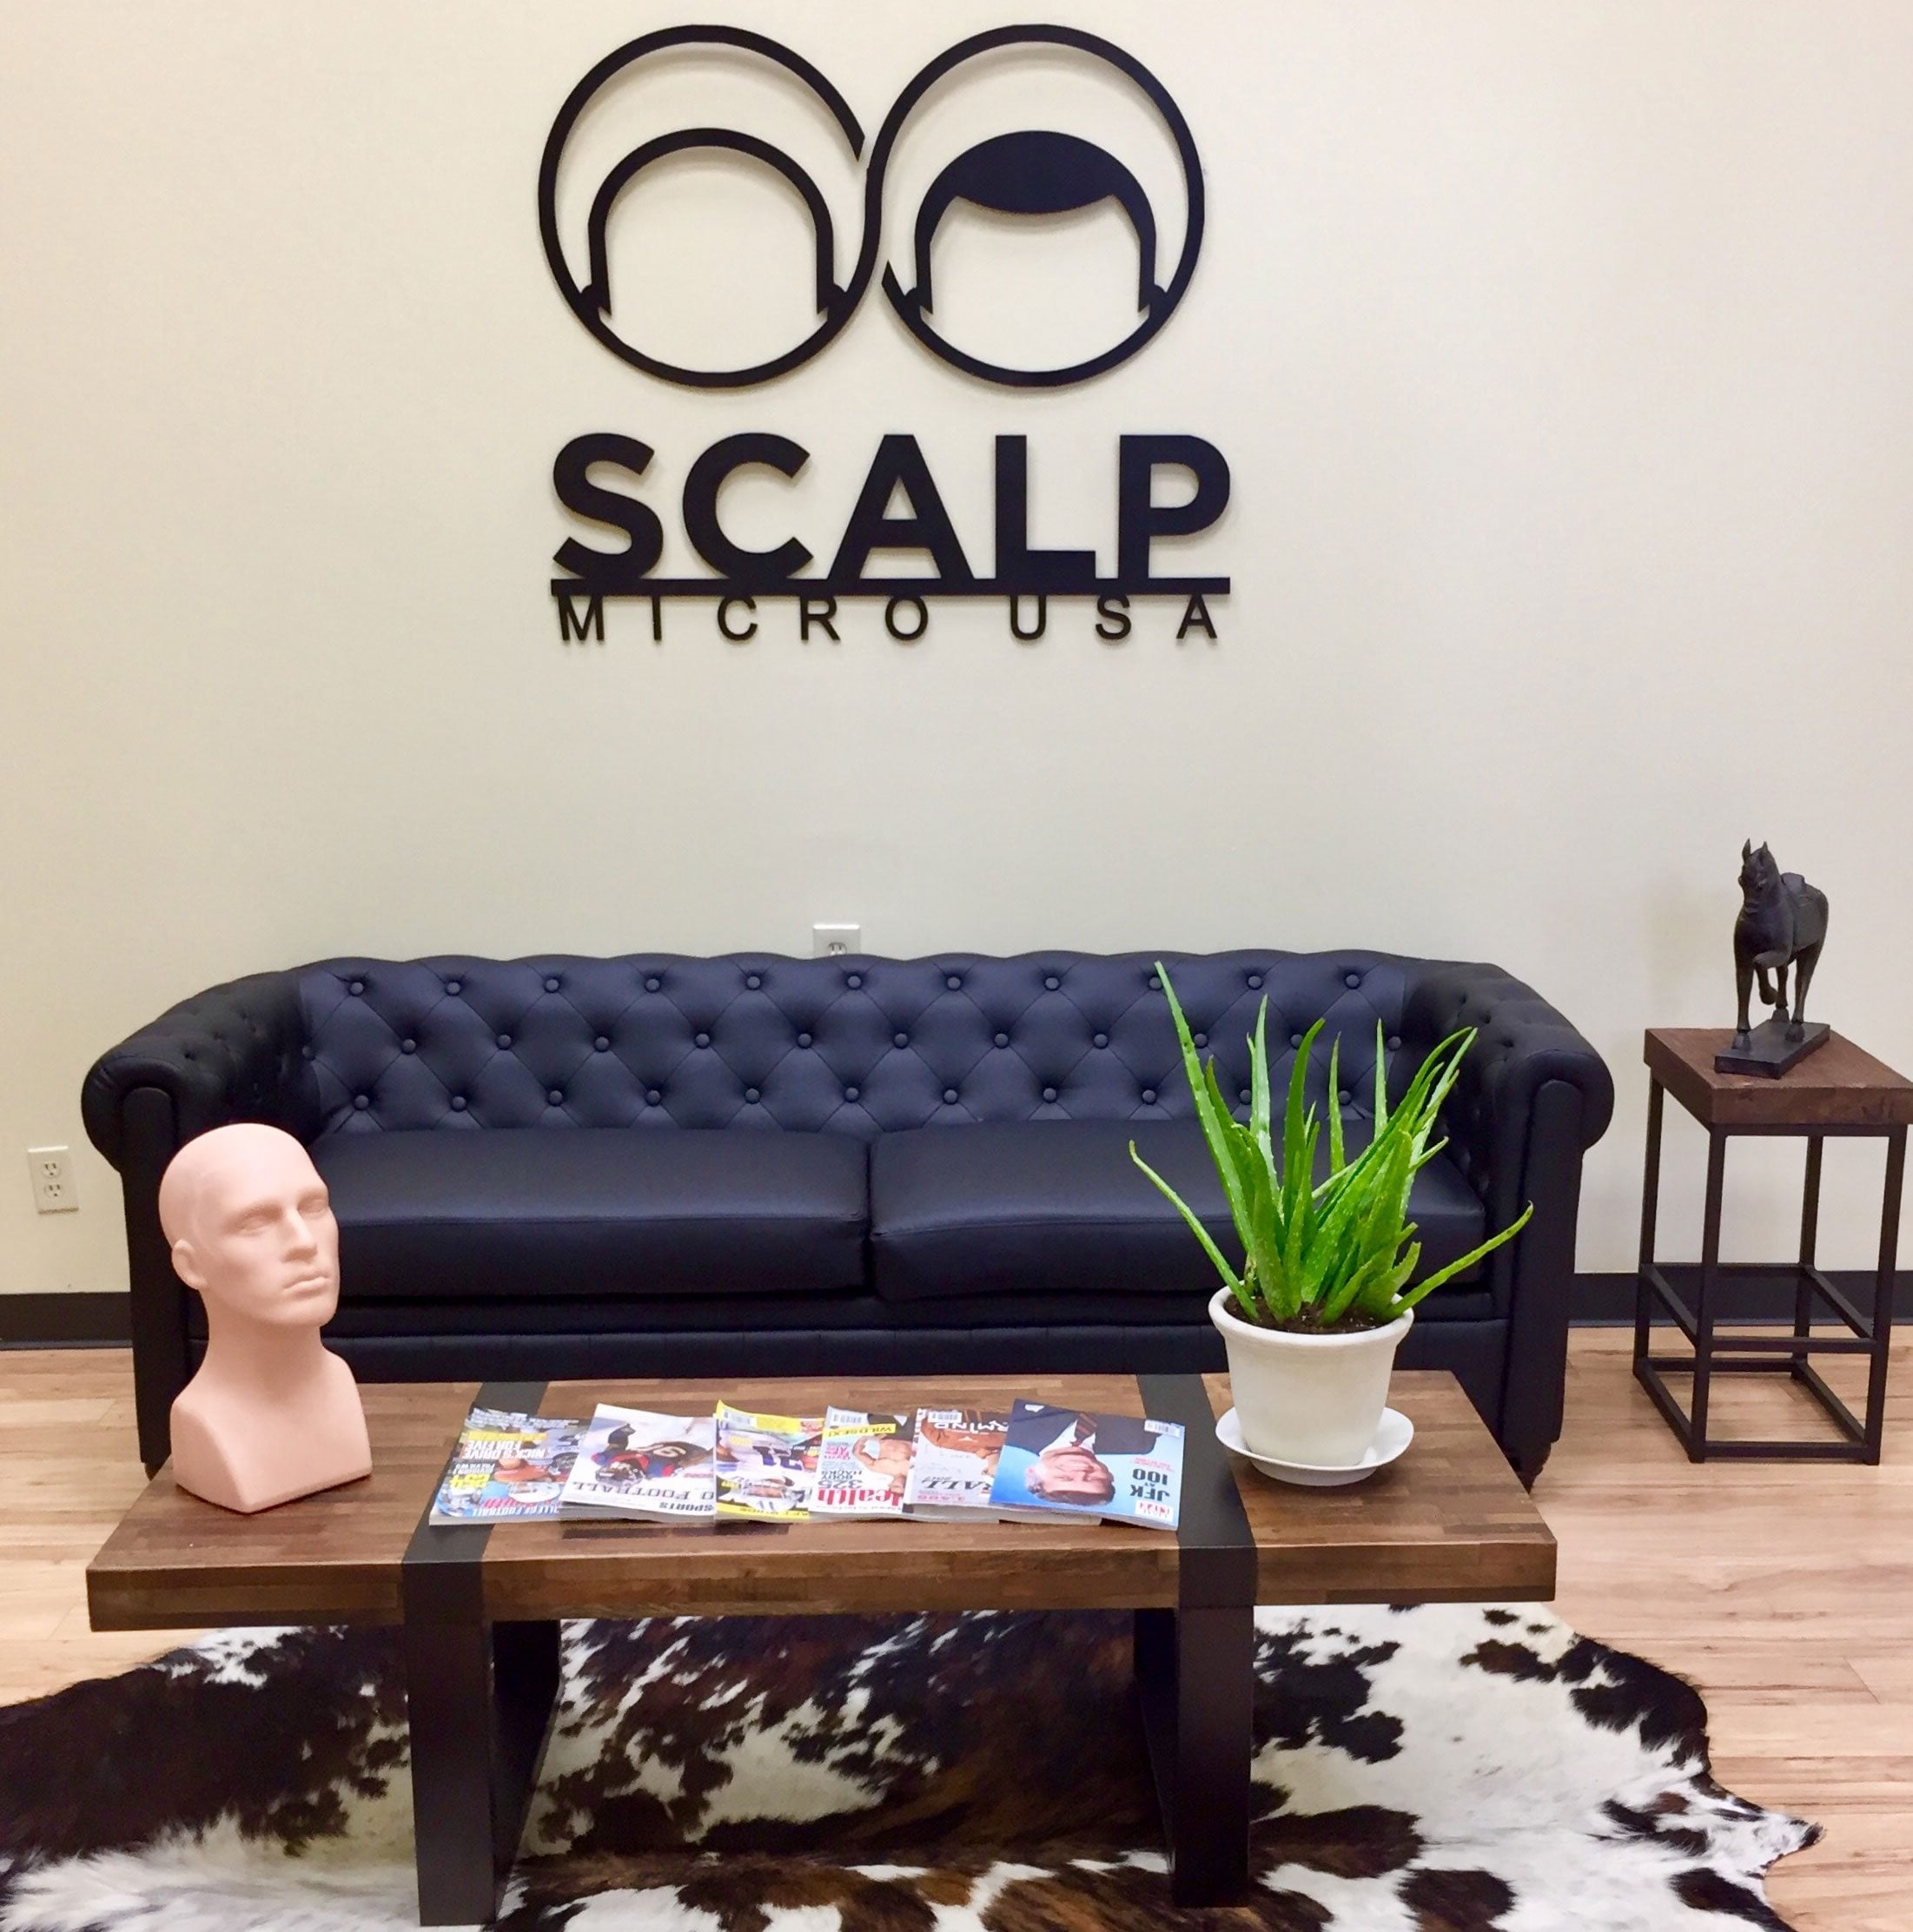 houston texas scalp micropigmentation